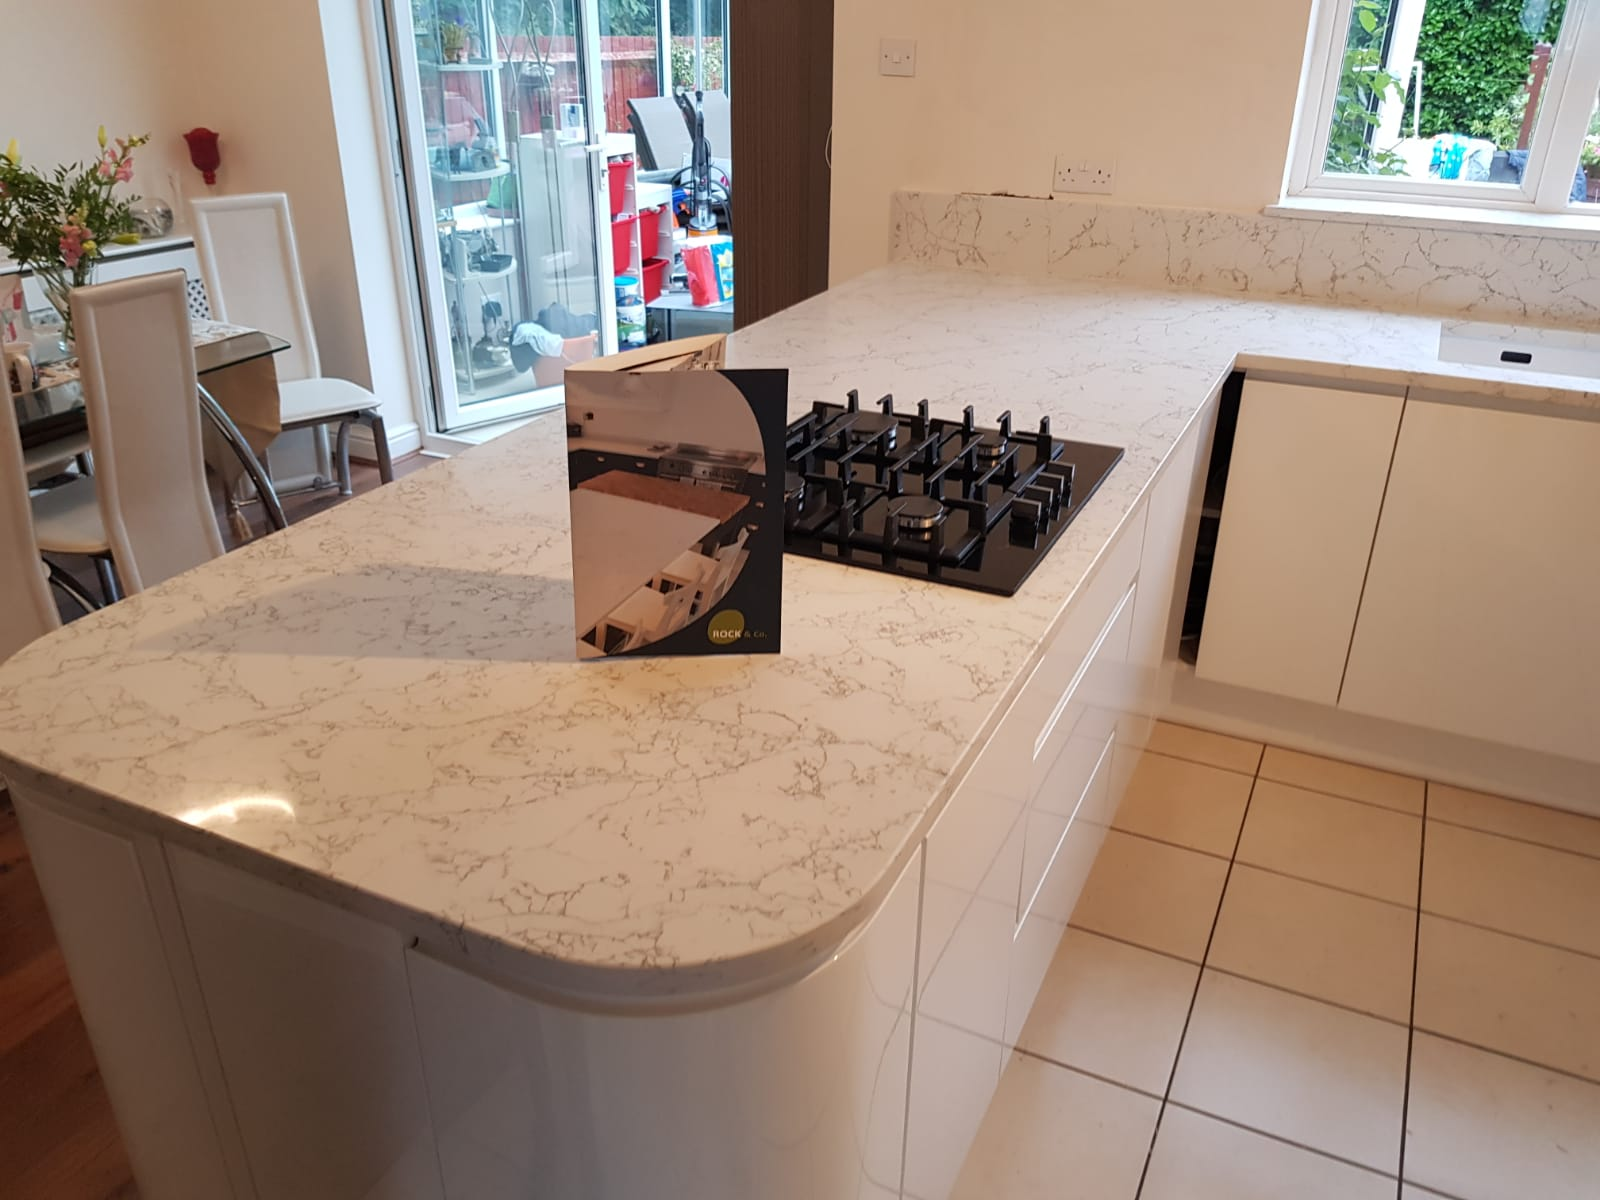 Kitchen of the week… Located in Stevenage, Herts, showcasing the Montblanc Calacutta